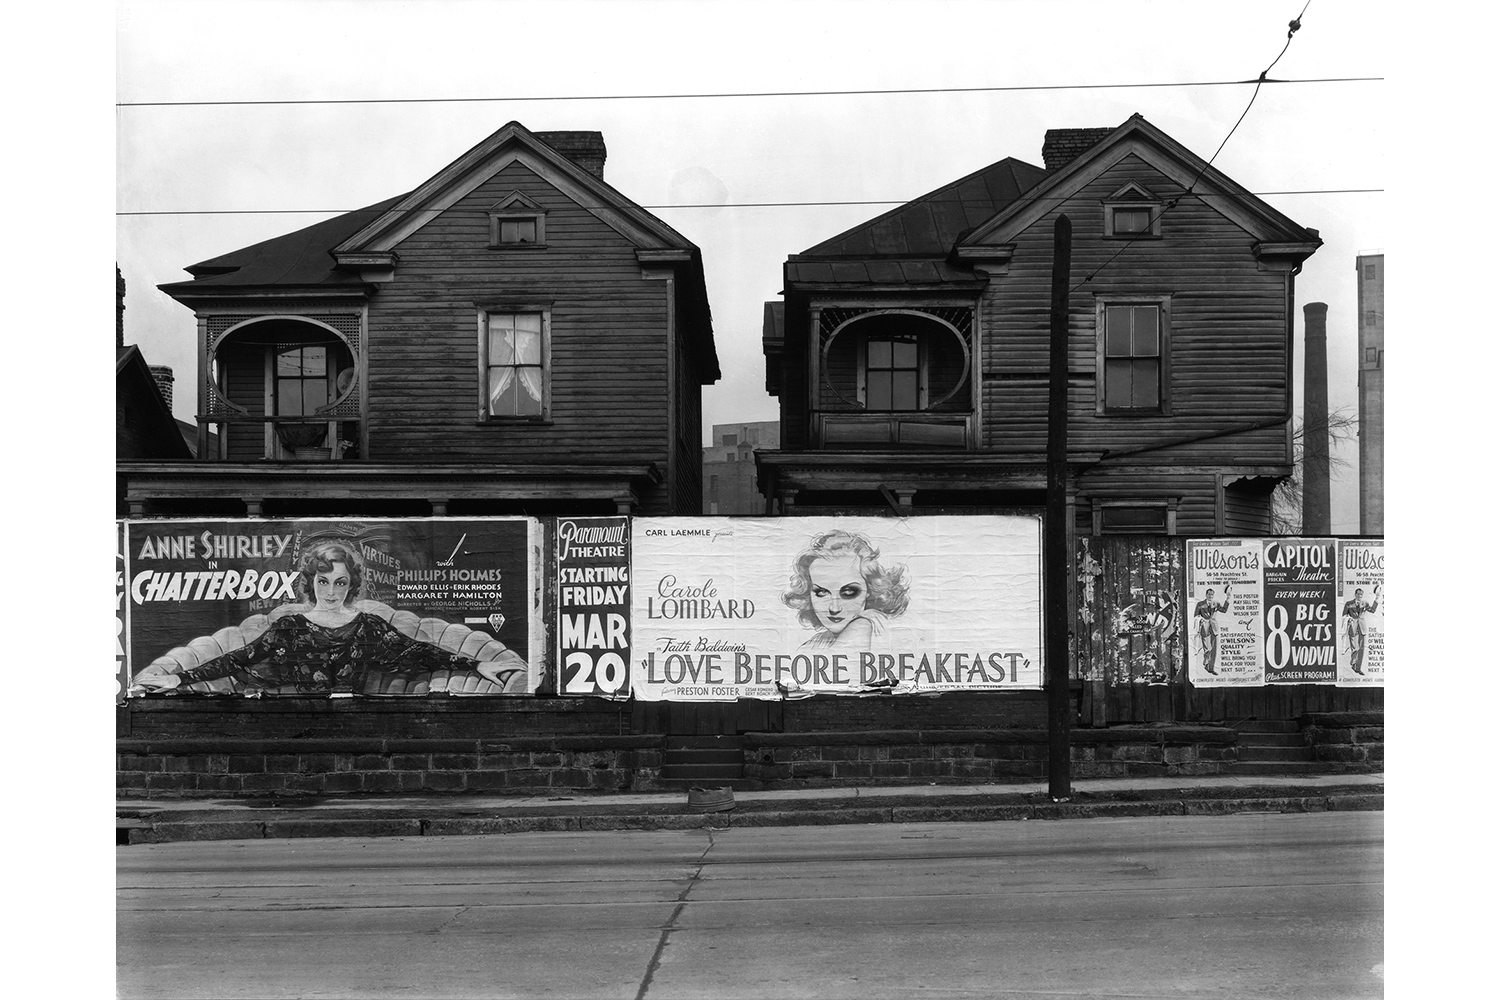 House and Billboards, Atlanta, 1936                                                                                             Courtesy Library of Congress Prints and Photographs Division